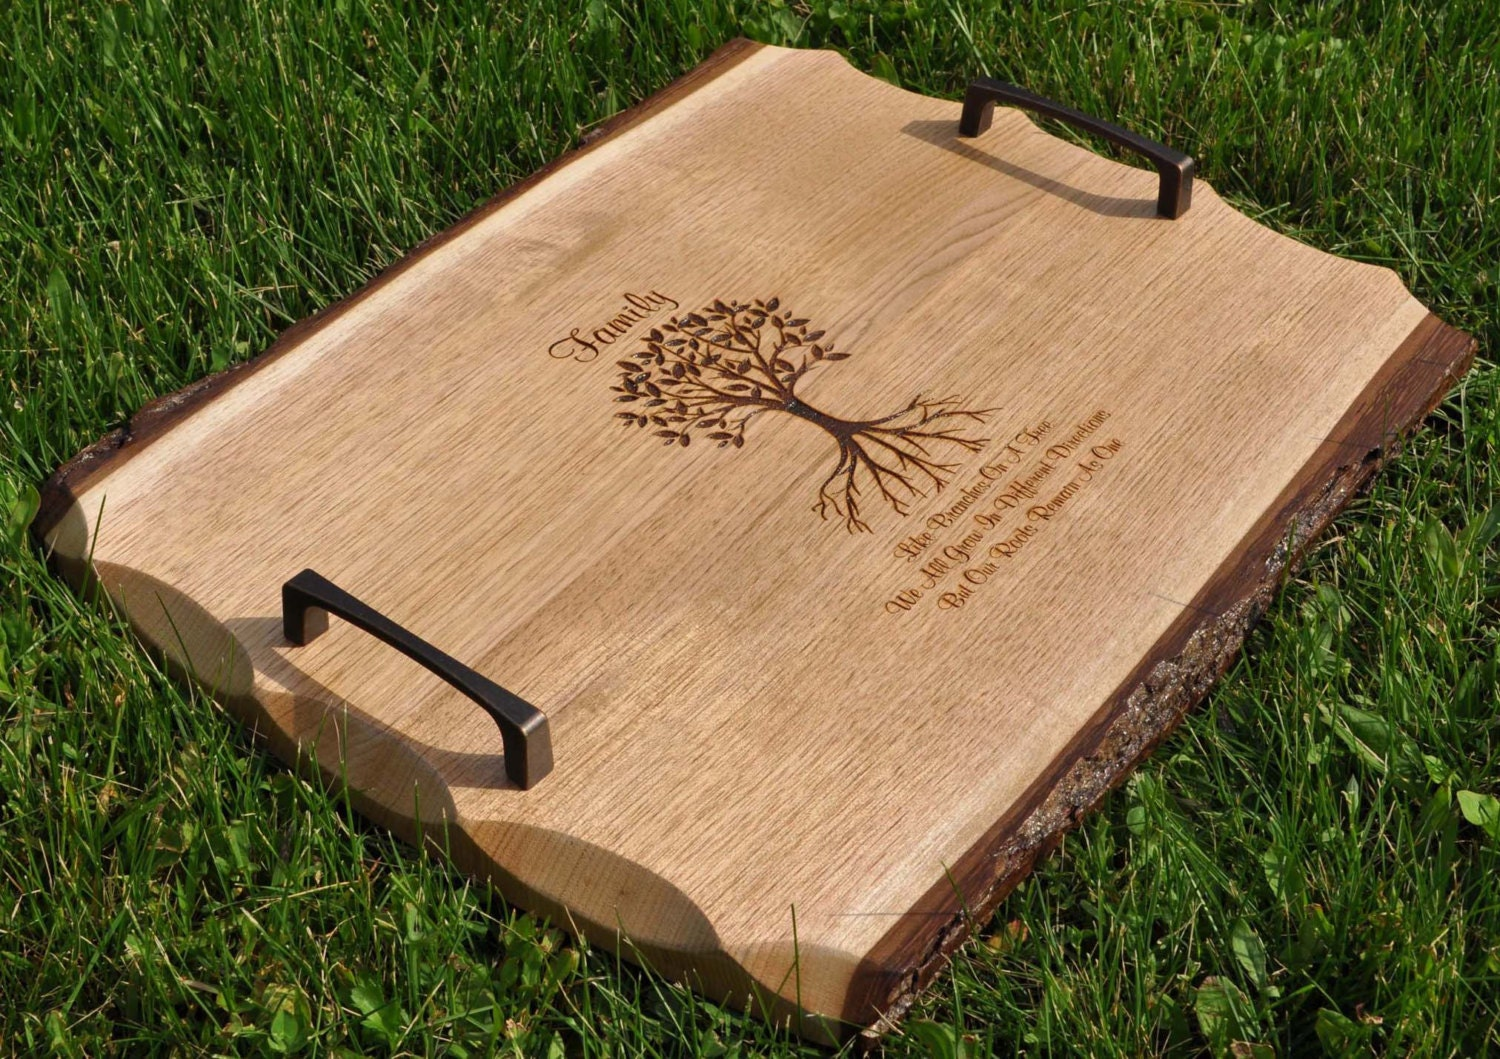 Wedding Gifts For Parents Ireland : Wedding Gift To Parents. Wedding Gift. Ottoman Tray. Family